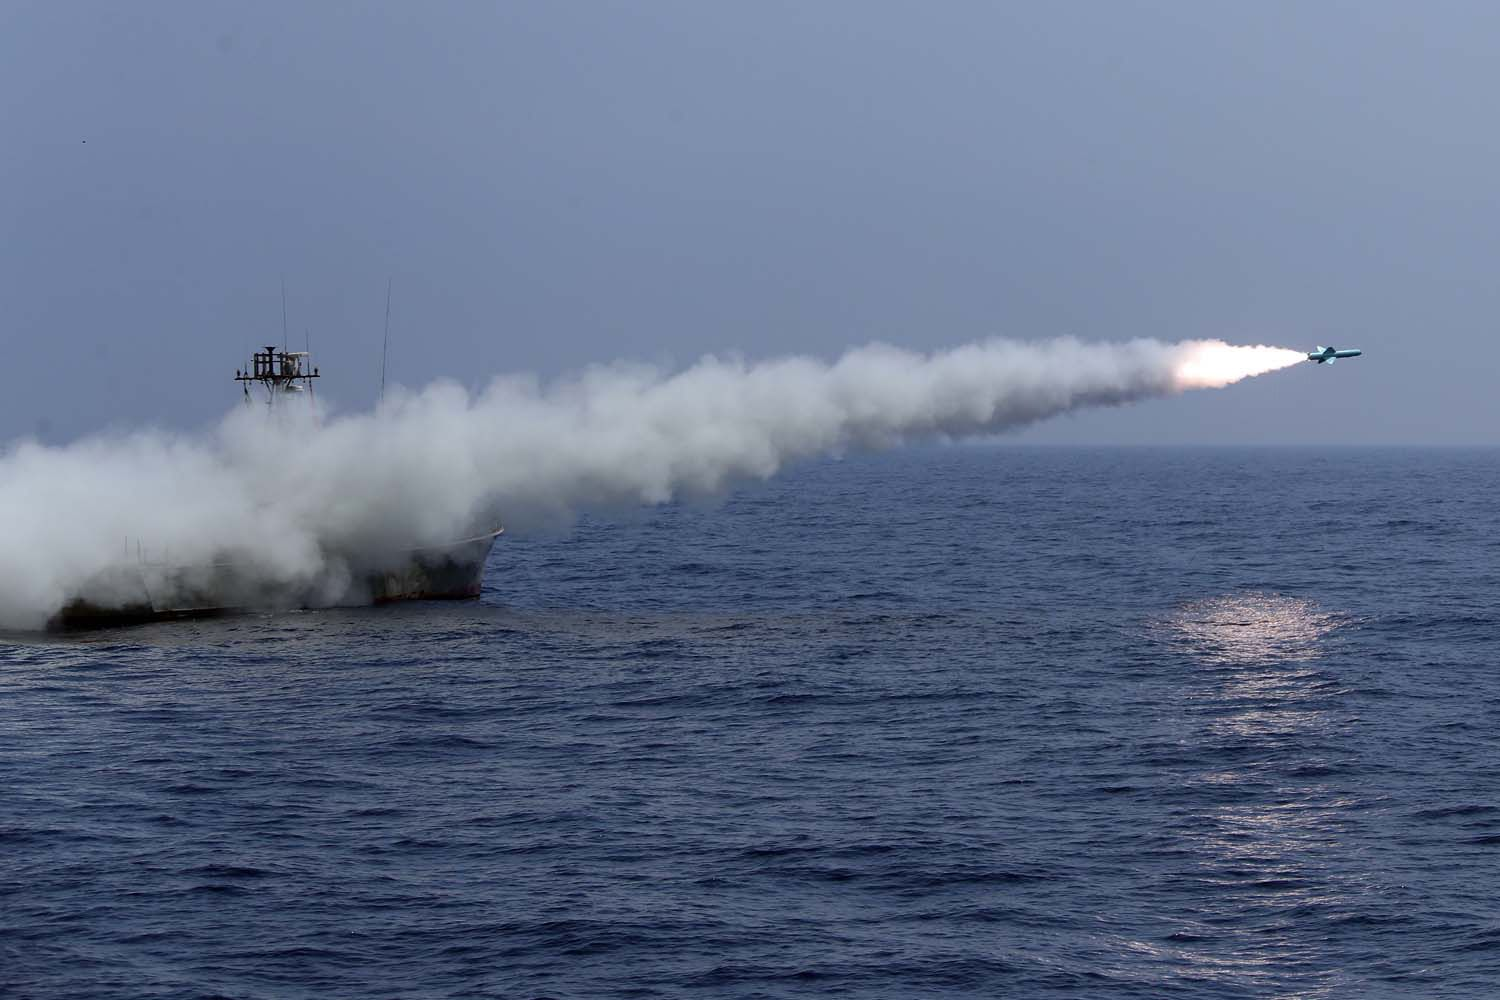 Iran Is Quietly Building a Fleet of Missile-Slinging Catamarans